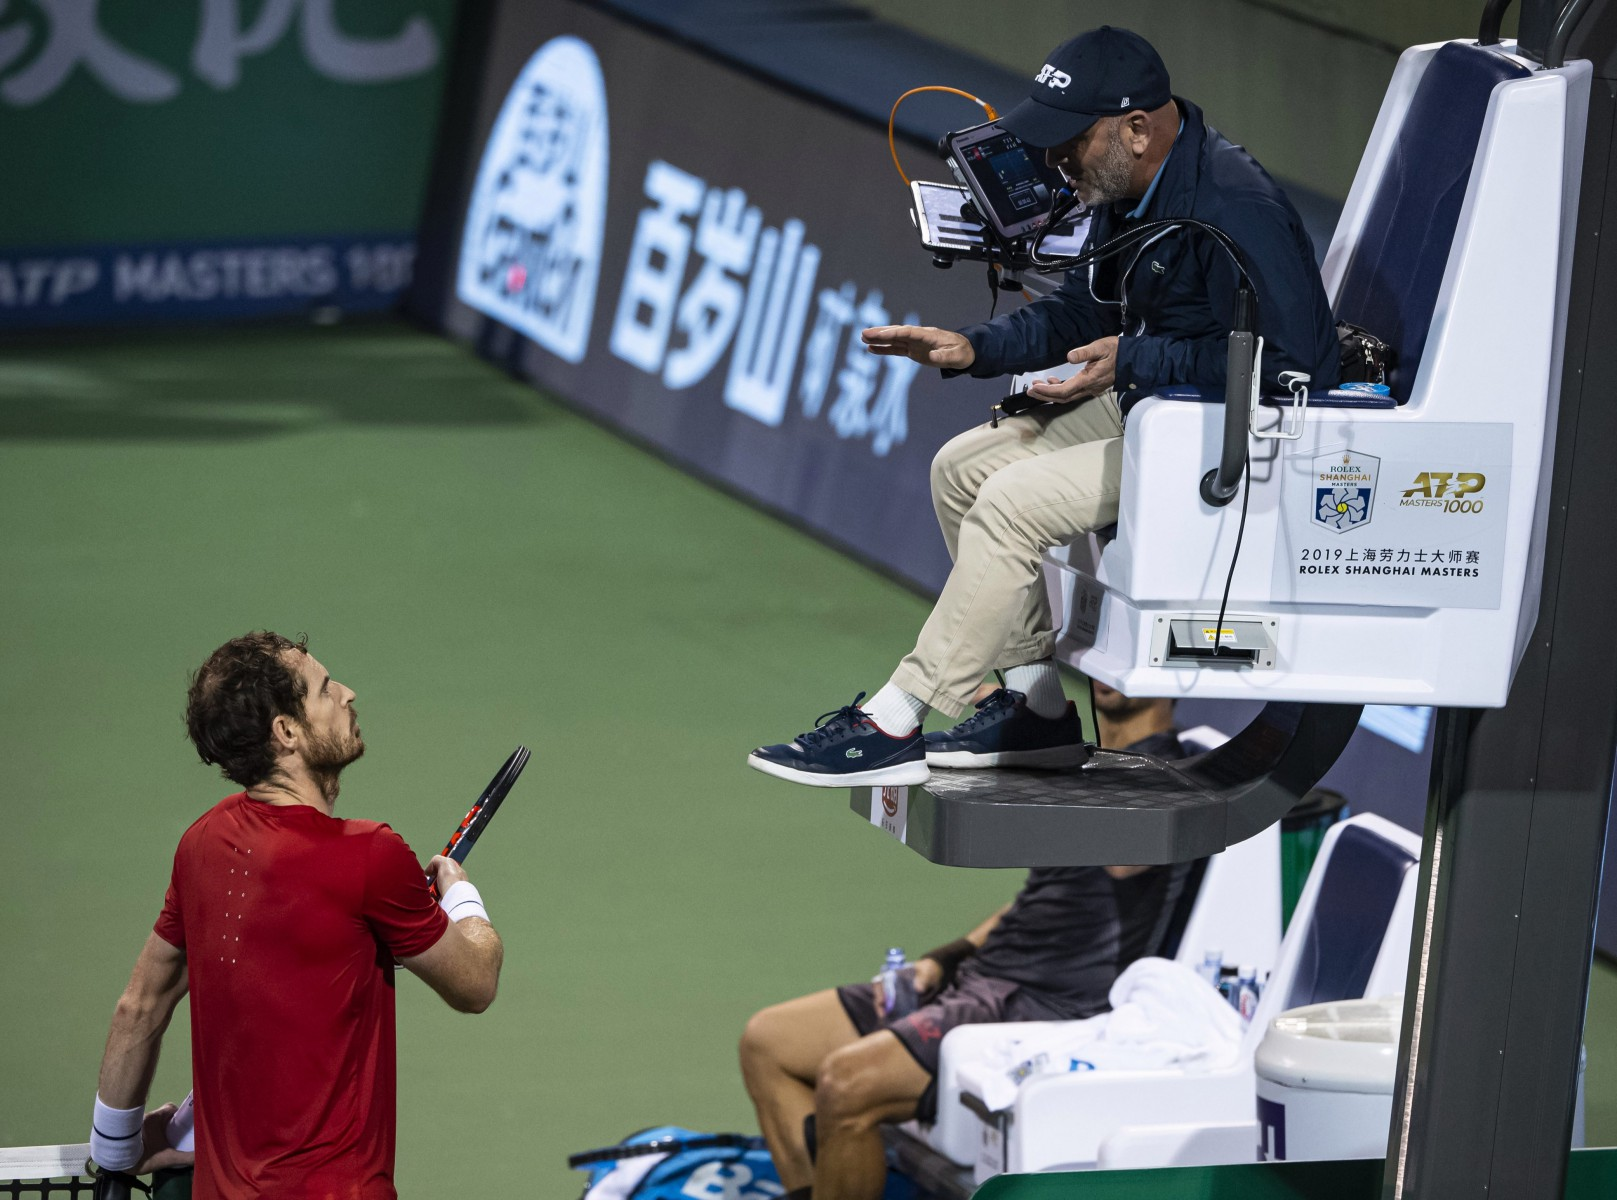 The British star was furious after Fognini shouted during a point at a tense moment of the match